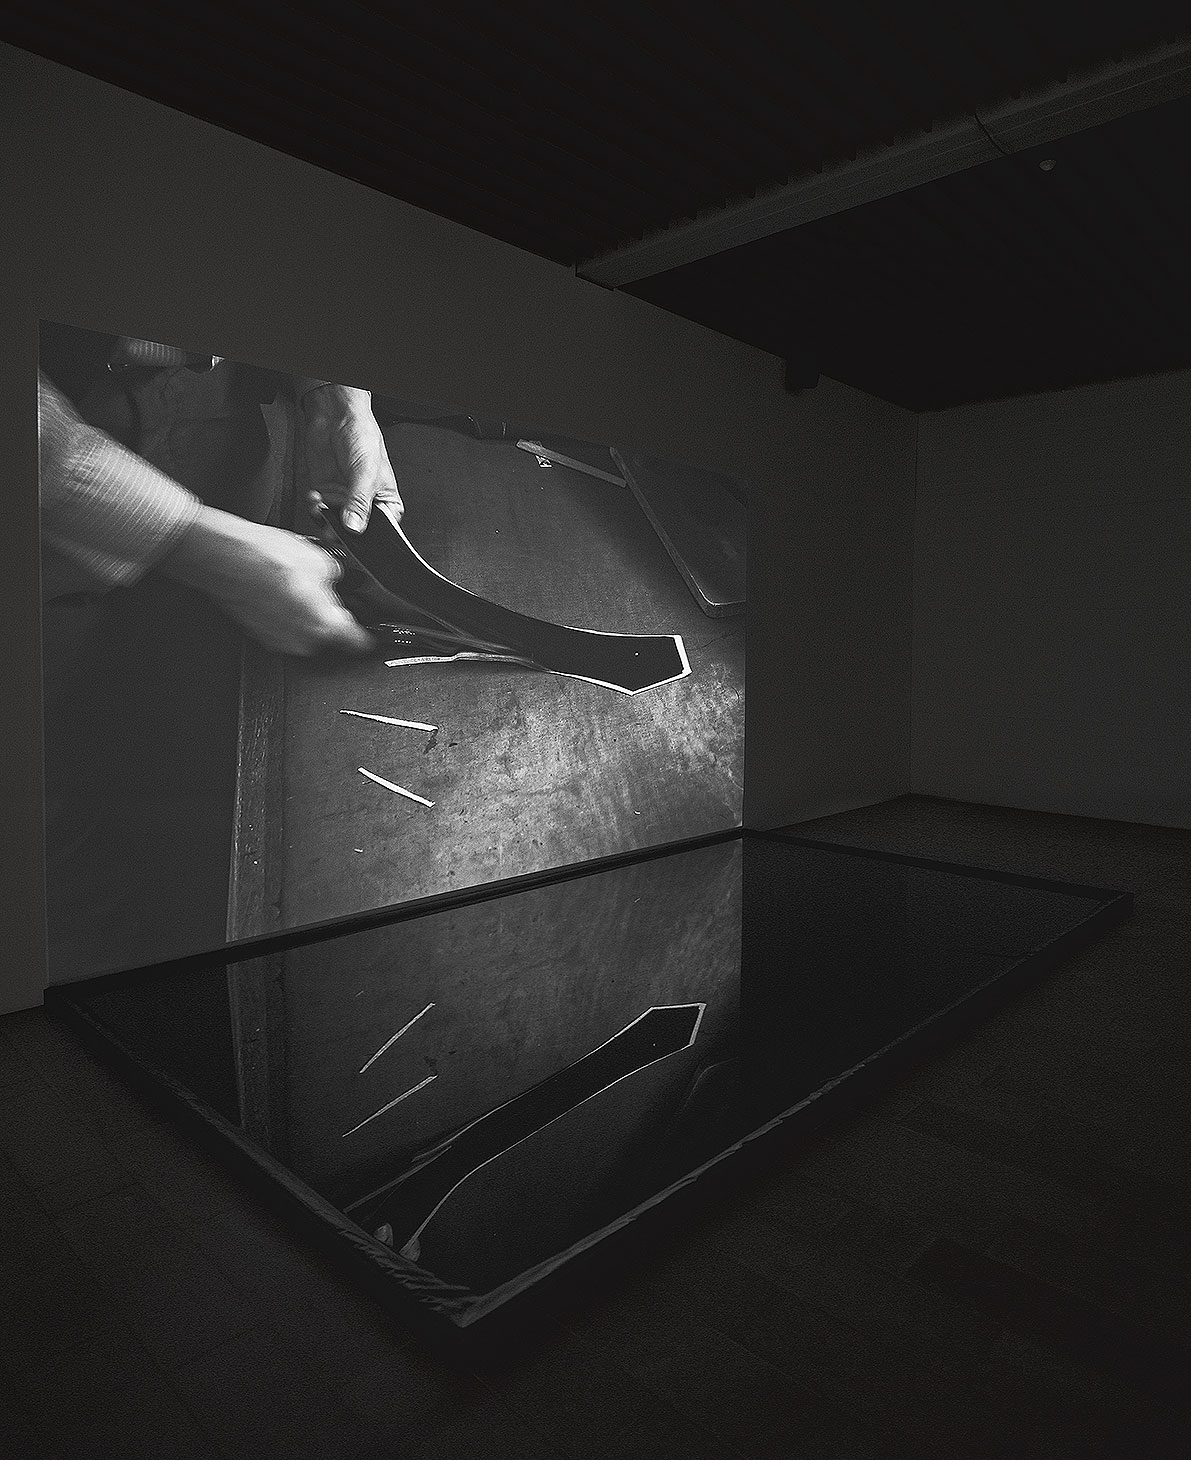 Tailor, video-installation: projection, Foley-sound, water pool.